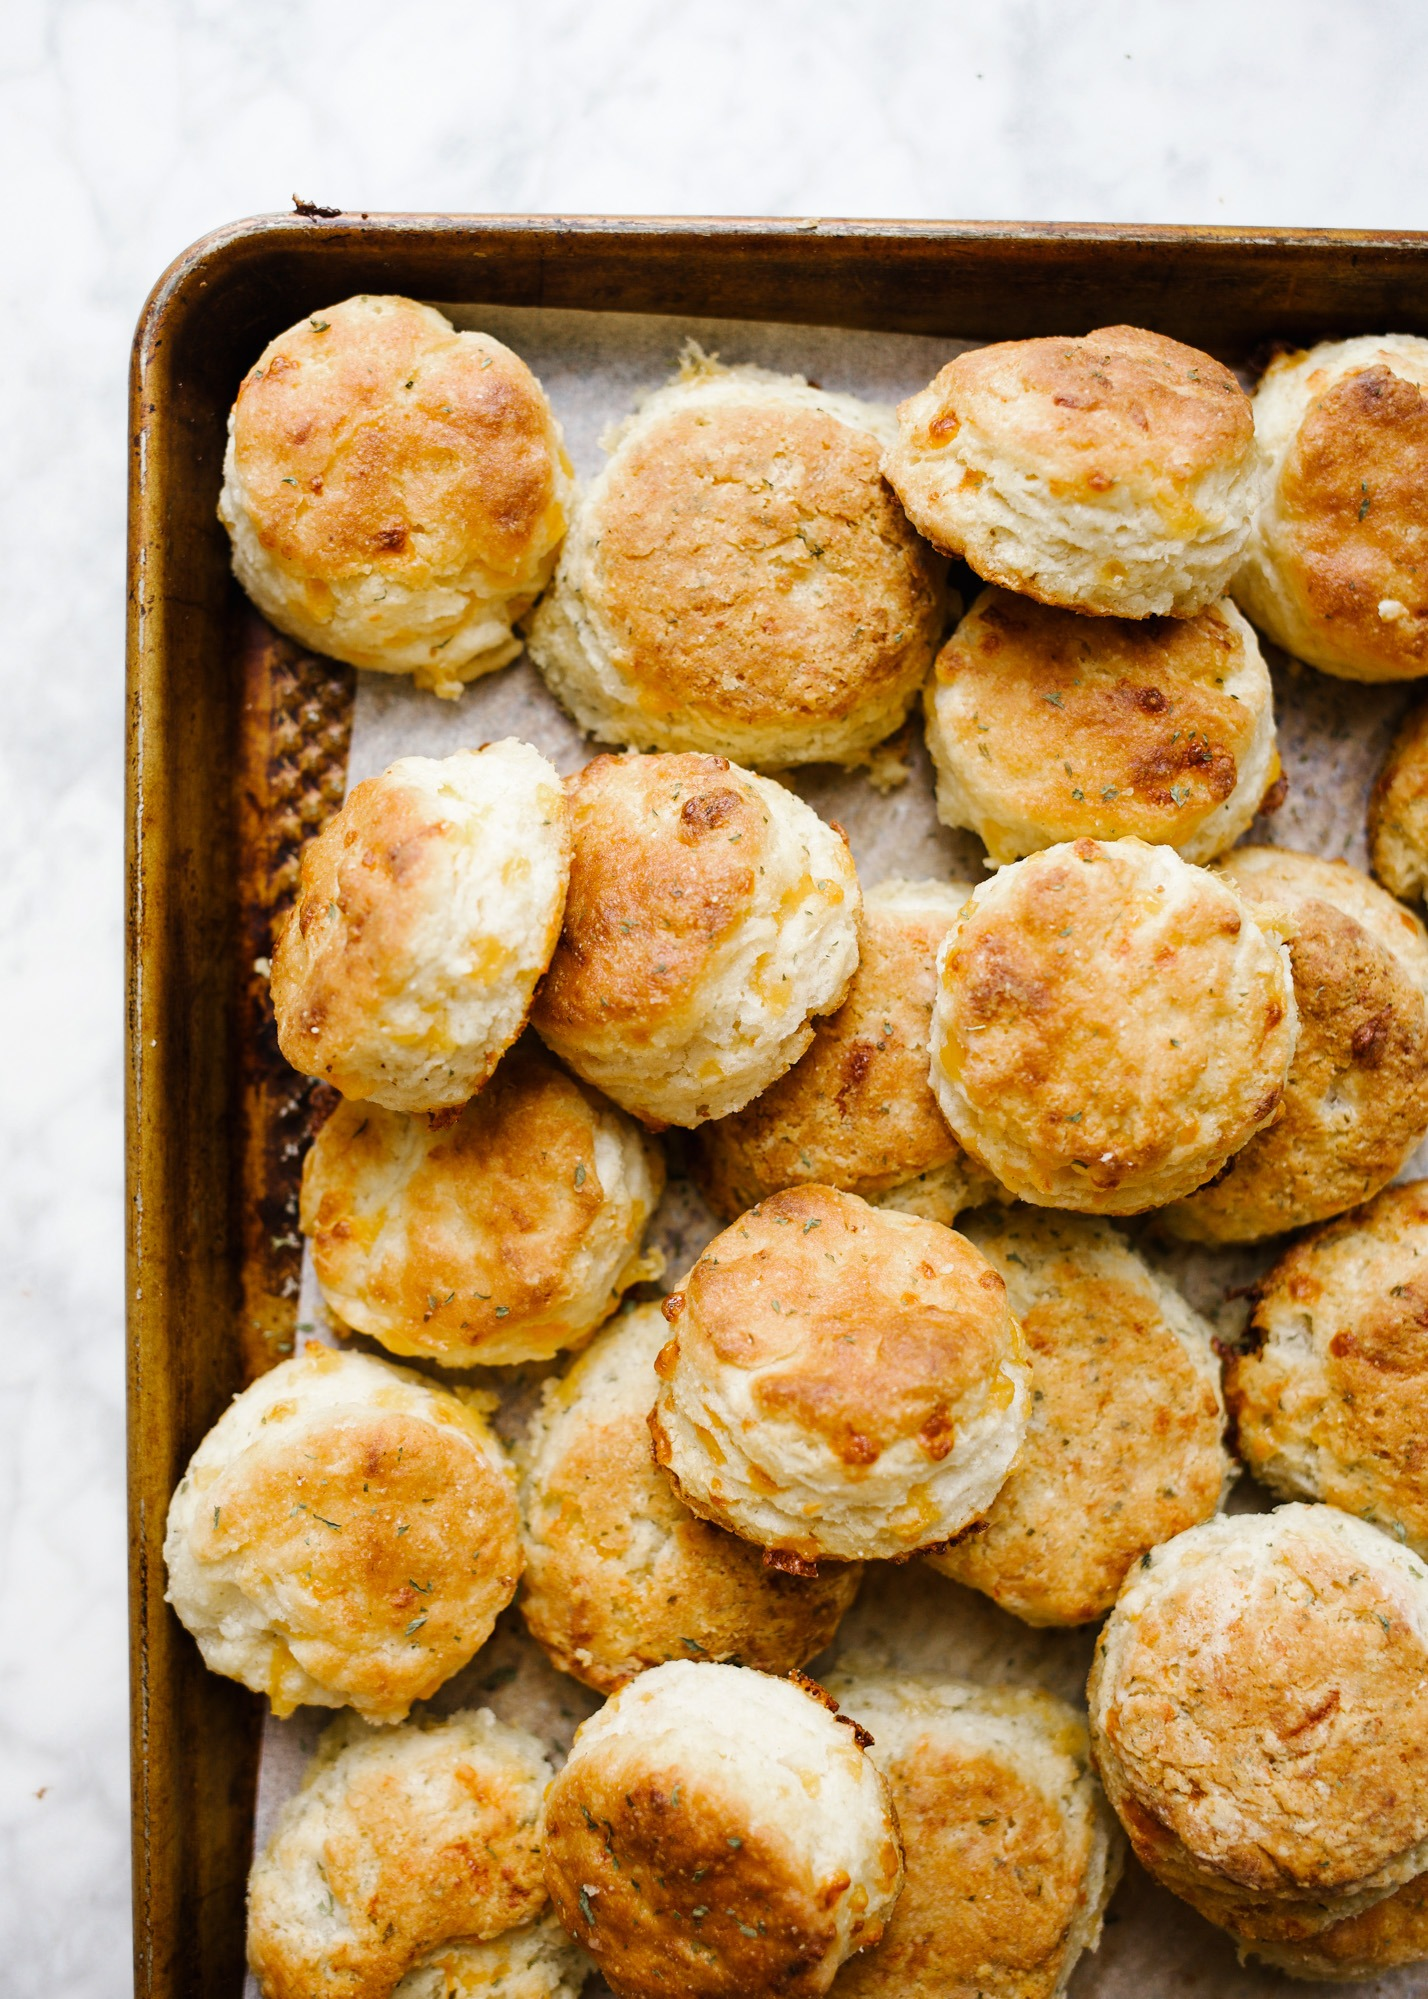 Cheddar Cornmeal Biscuits by Wood and Spoon blog. These are layered, buttery, Southern-style biscuits flavored with cheddar cheese, herbs, and cornmeal! The texture comes out to somewhere between cornbread, muffins, and biscuits! These baked breads are loaded with flavor and serve as a great side item or bread option for dinners all year round. Give these flaky breakfast treats a try on thewoodandspoon.com